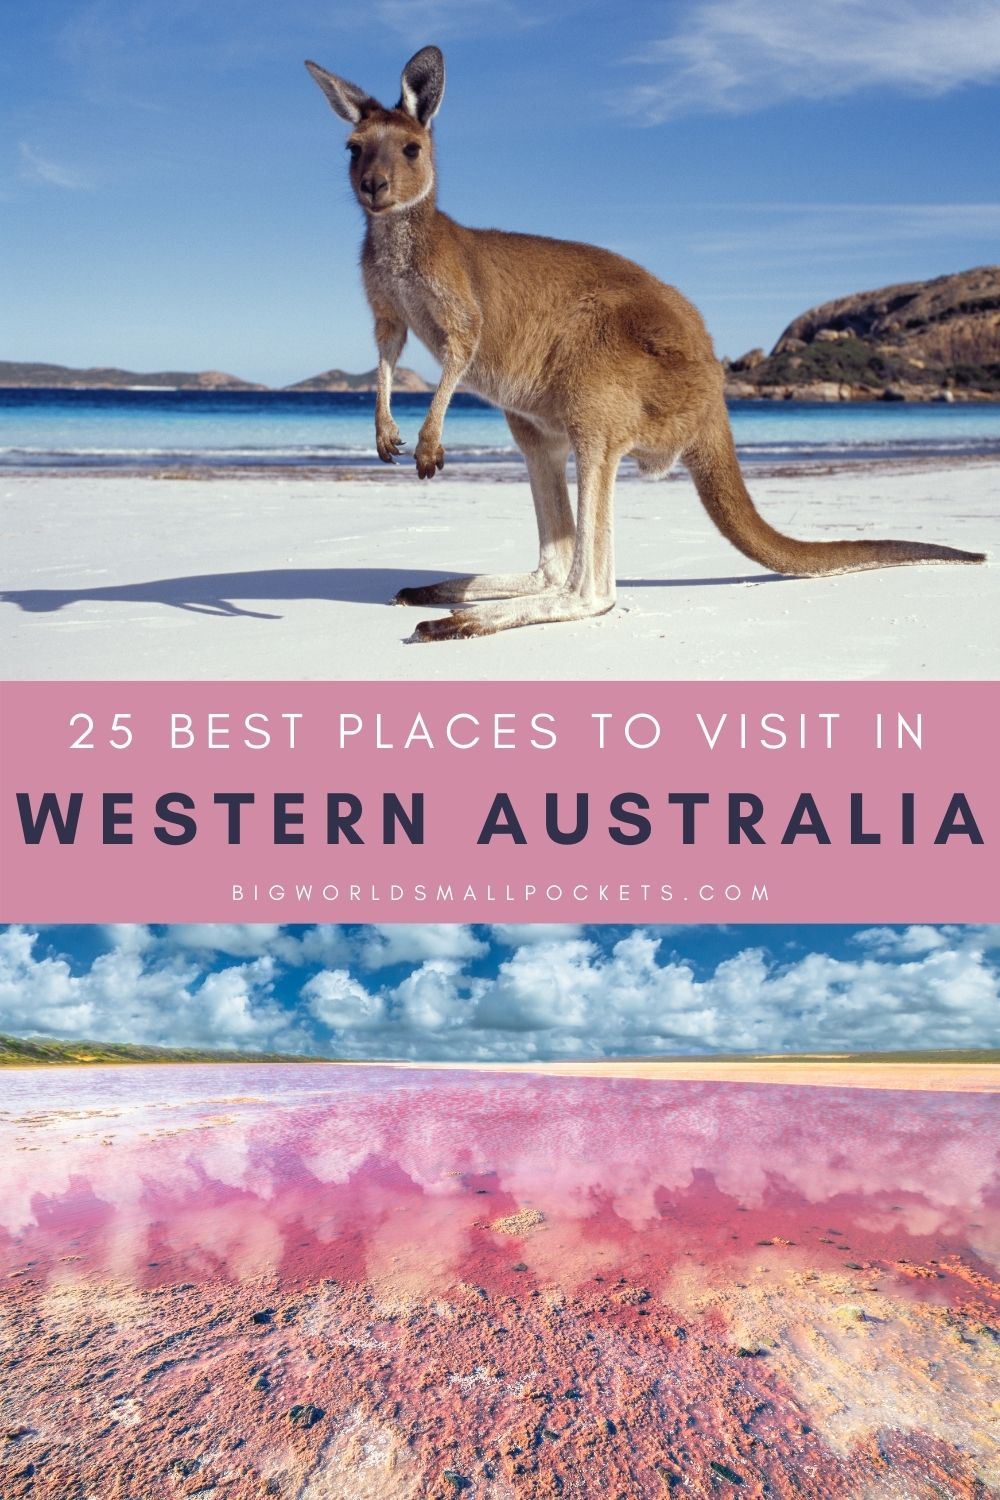 25 Epic Places to Visit in Western Australia